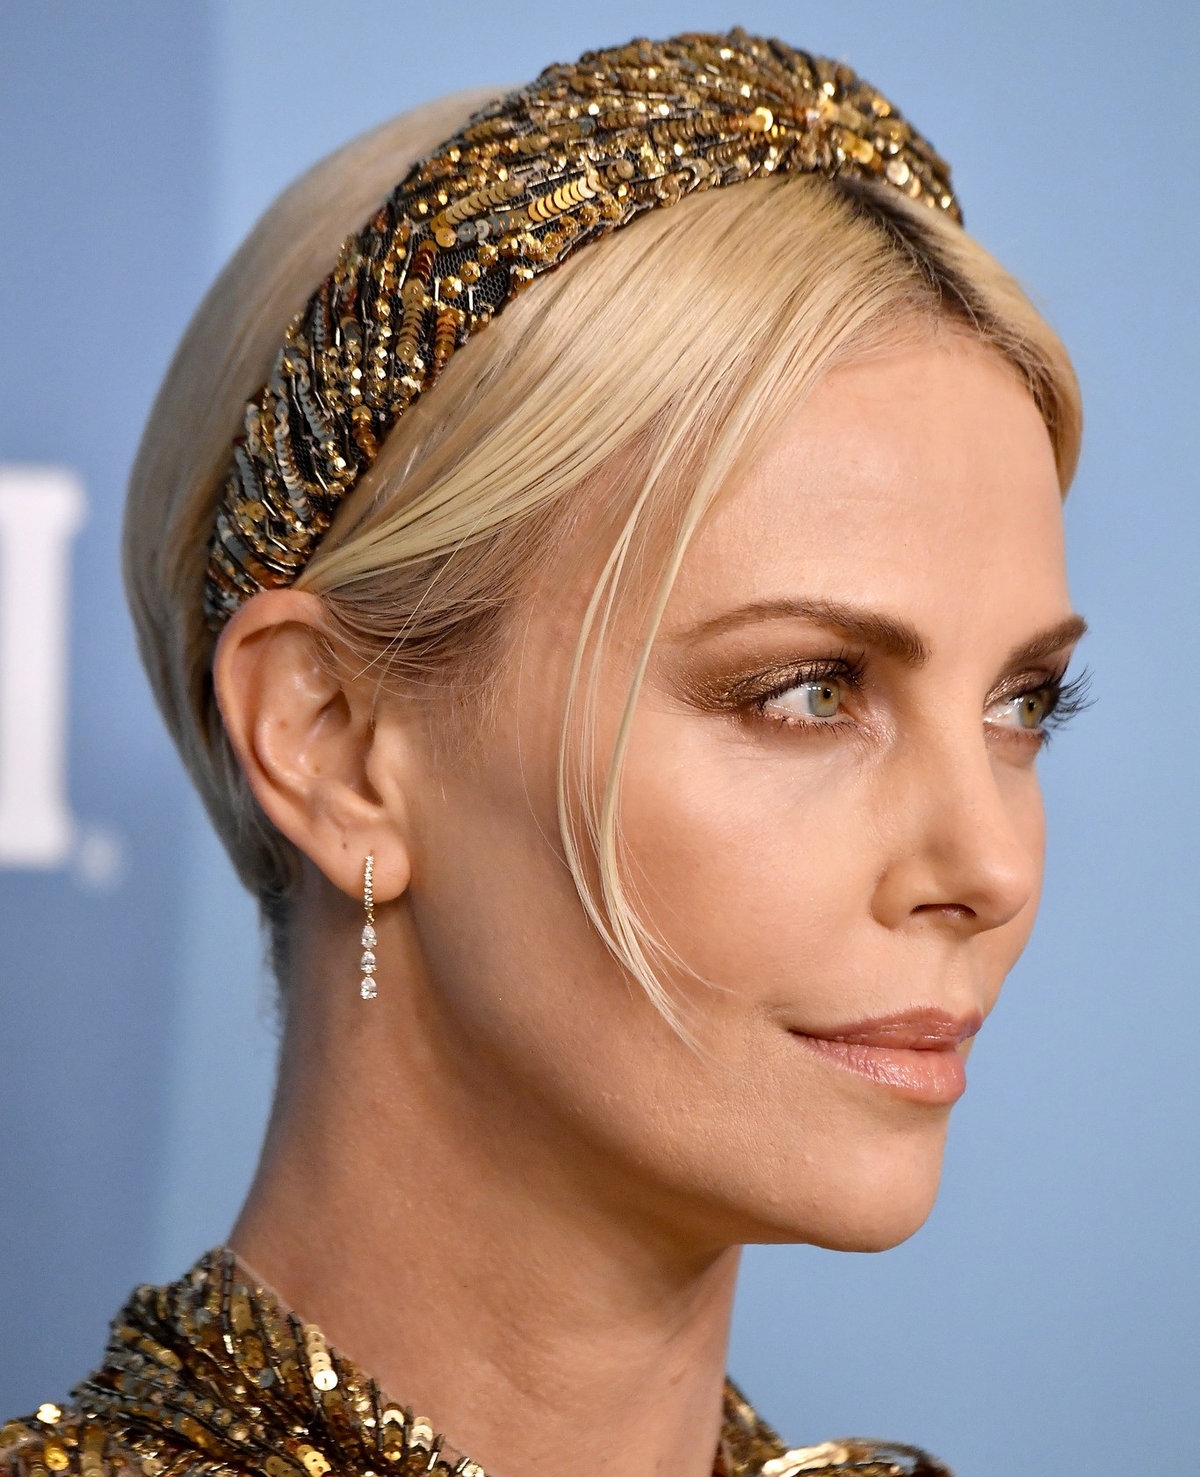 Charlize Theron wears the hair trend of the season